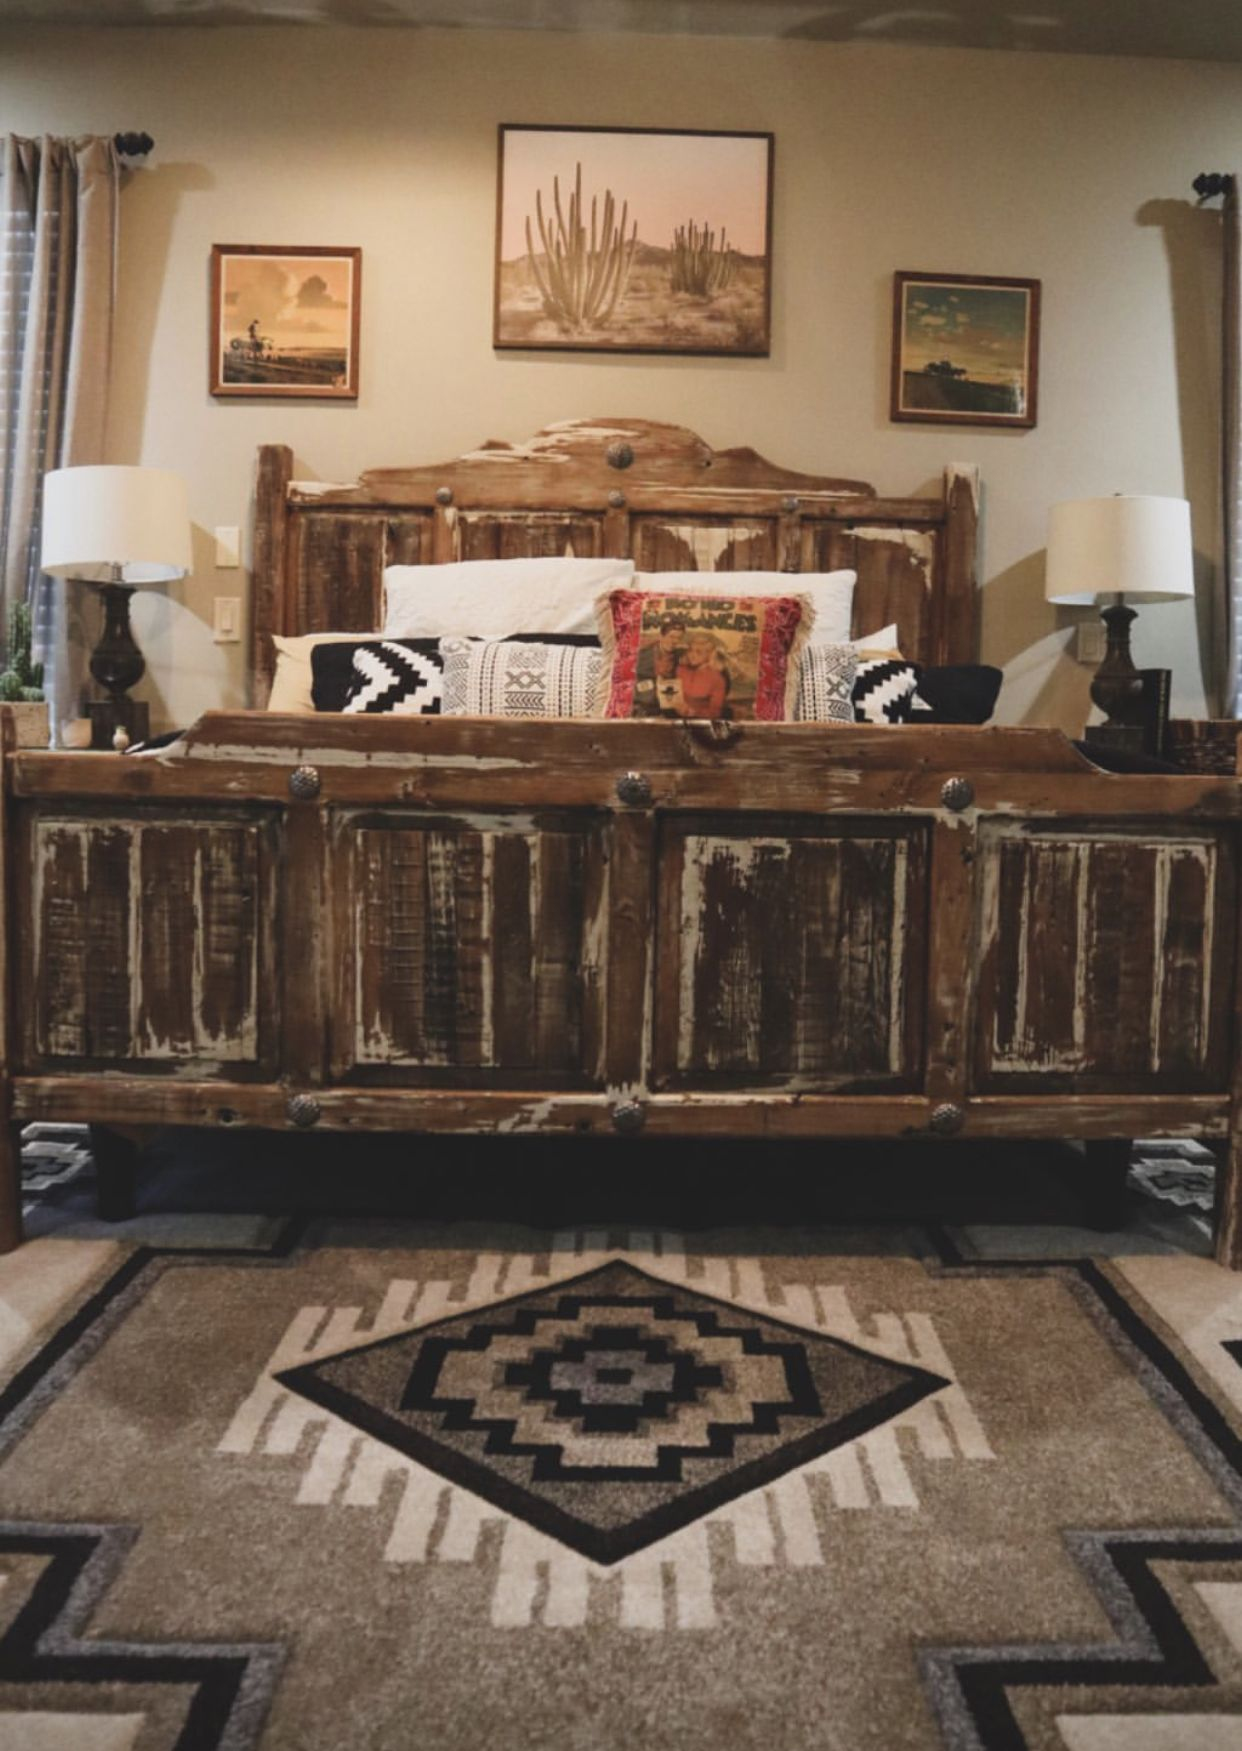 Pin By Karina Marquez On Home Sweet Home Western Bedroom Decor Western Home Decor Home Decor Bedroom